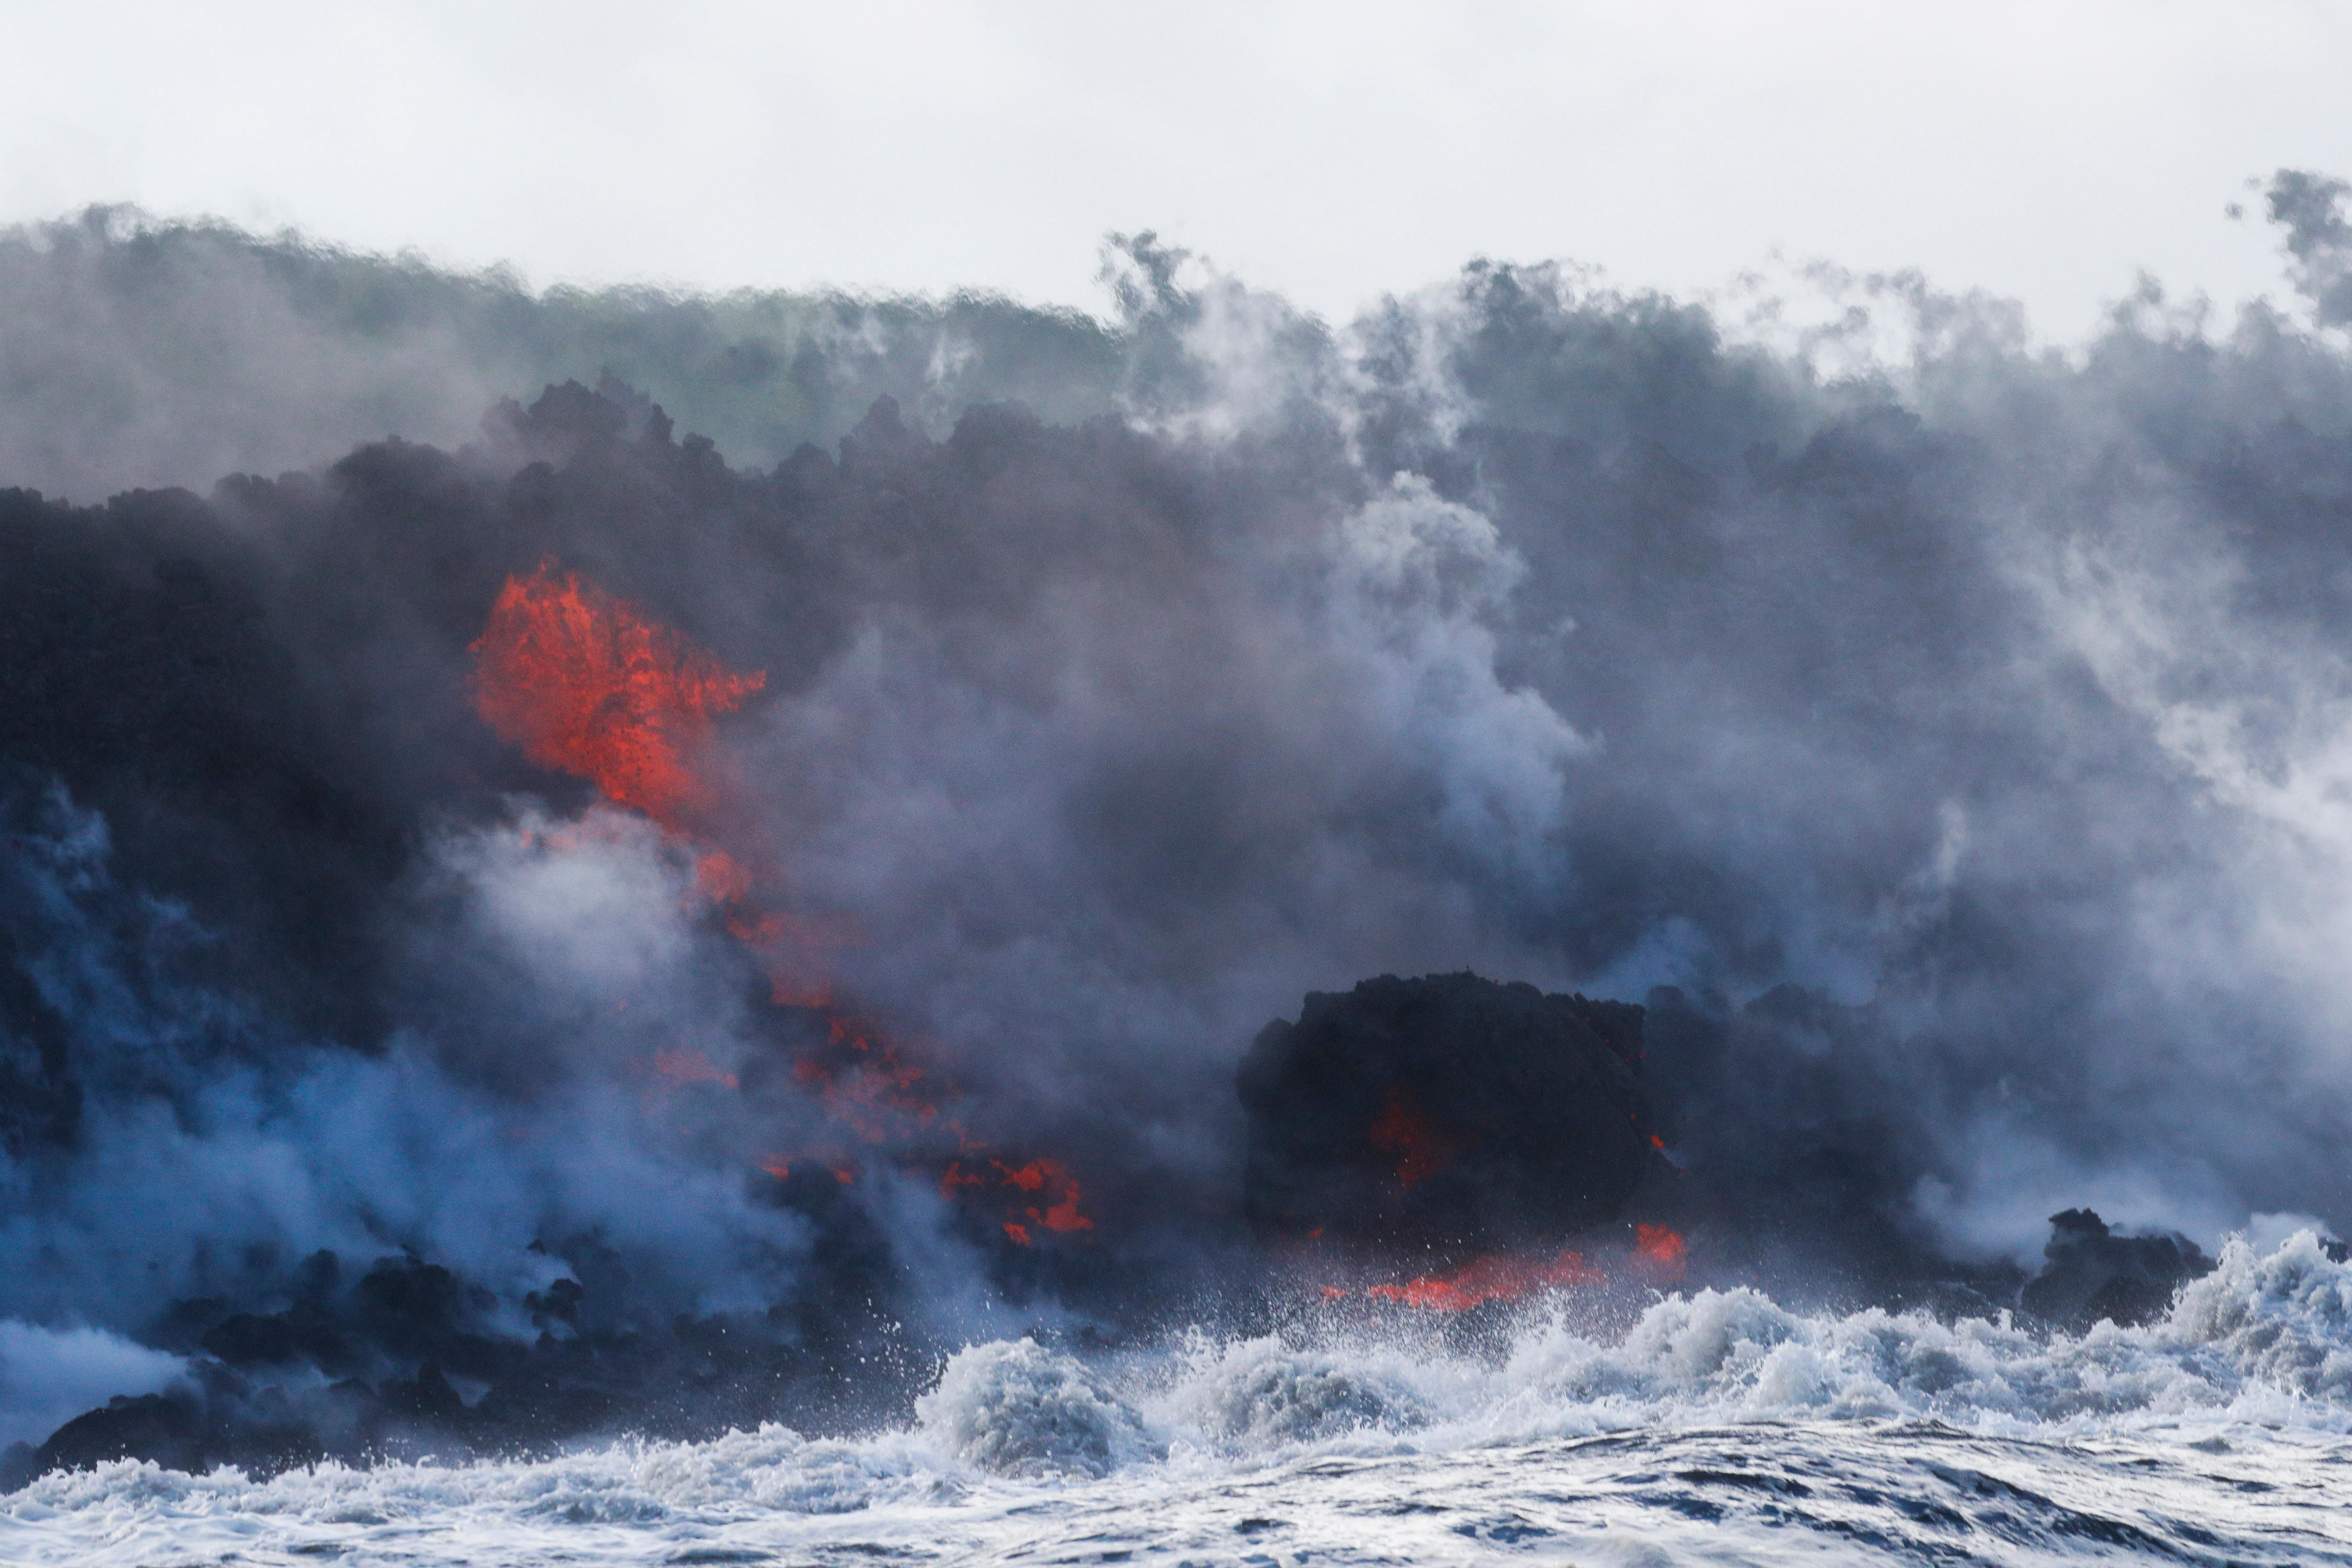 Lava flows into the ocean near Pahoa, Hawaii, Sunday, May 20, 2018. Kilauea volcano that is oozing, spewing and exploding on Hawaii's Big Island has gotten more hazardous in recent days, with rivers of molten rock pouring into the ocean Sunday and flying lava causing the first major injury. (AP Photo/Jae C. Hong)